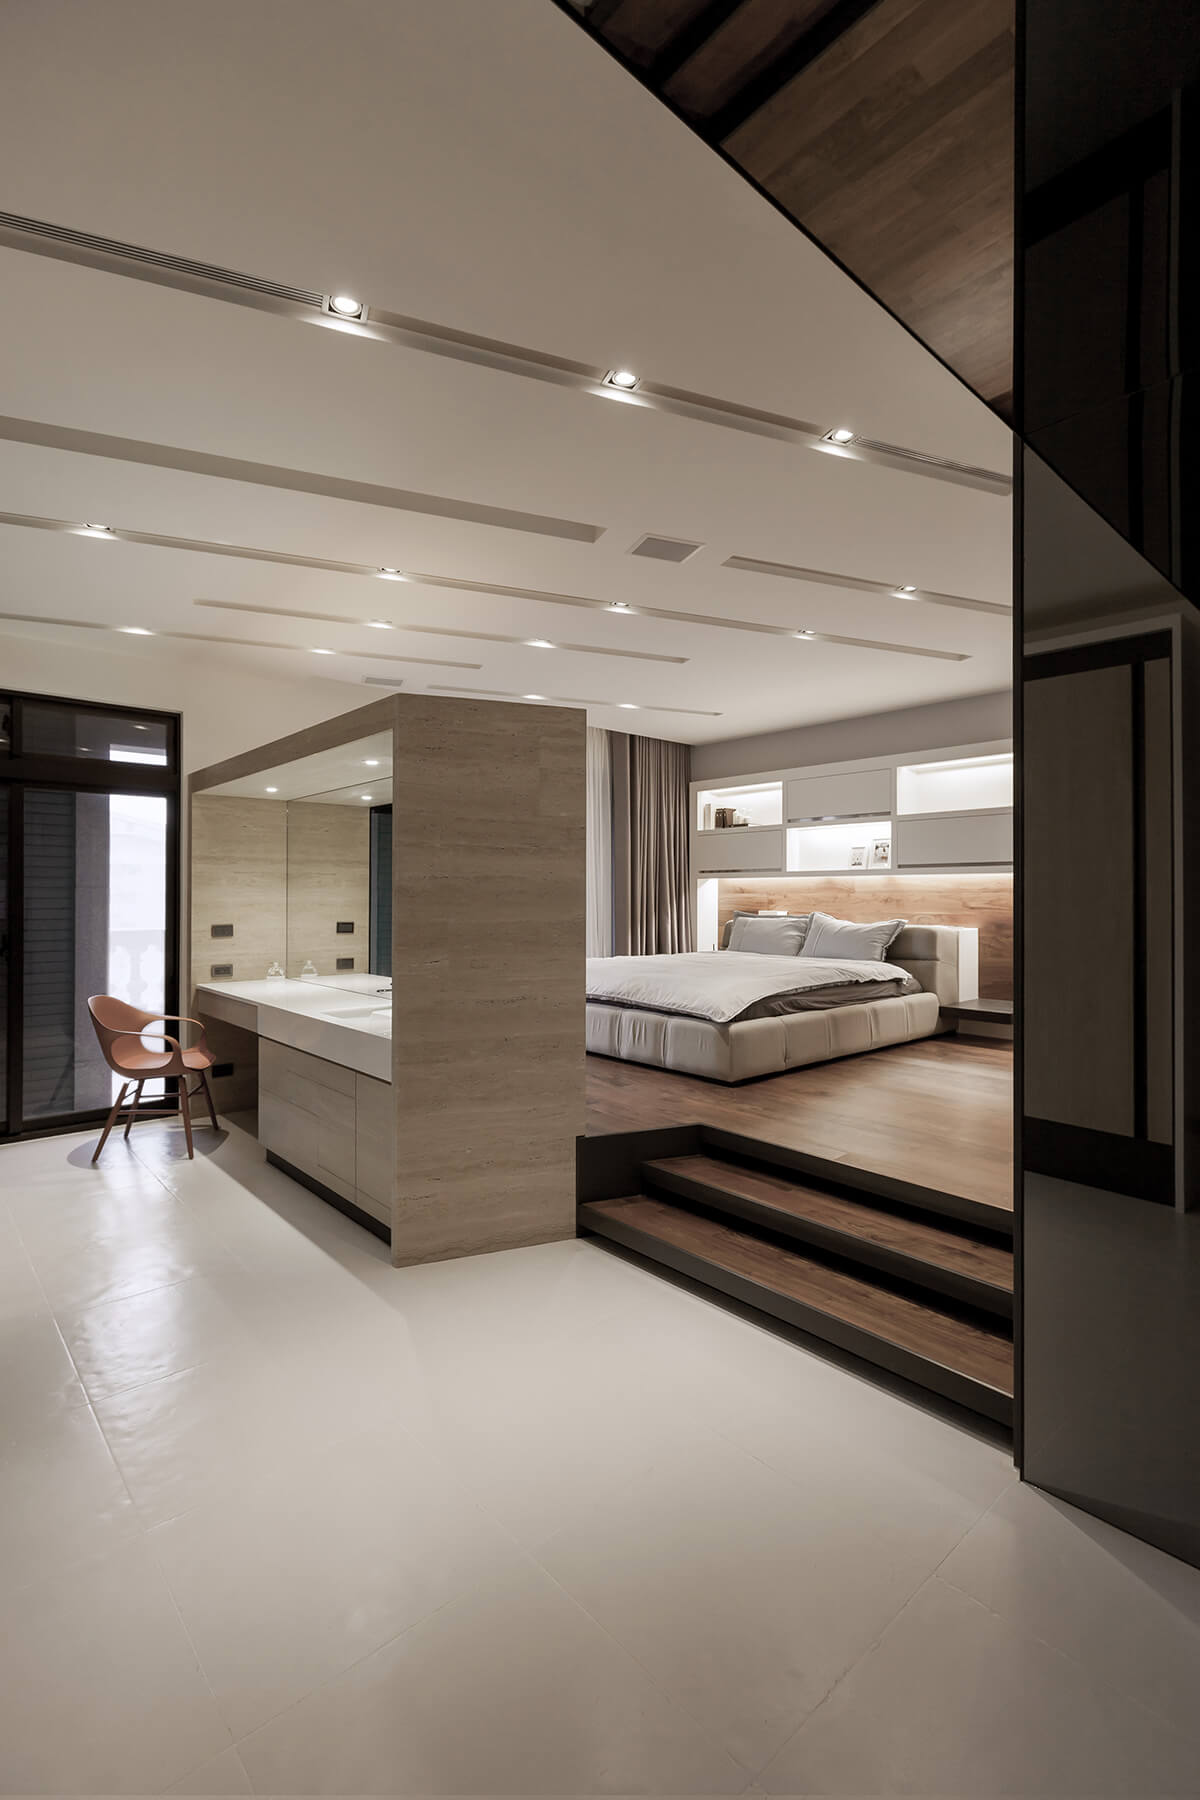 The bedroom en suite includes the marble wrapped vanity at left, helping bookend the bedroom itself. The raised hardwood flooring defines the comfy space.